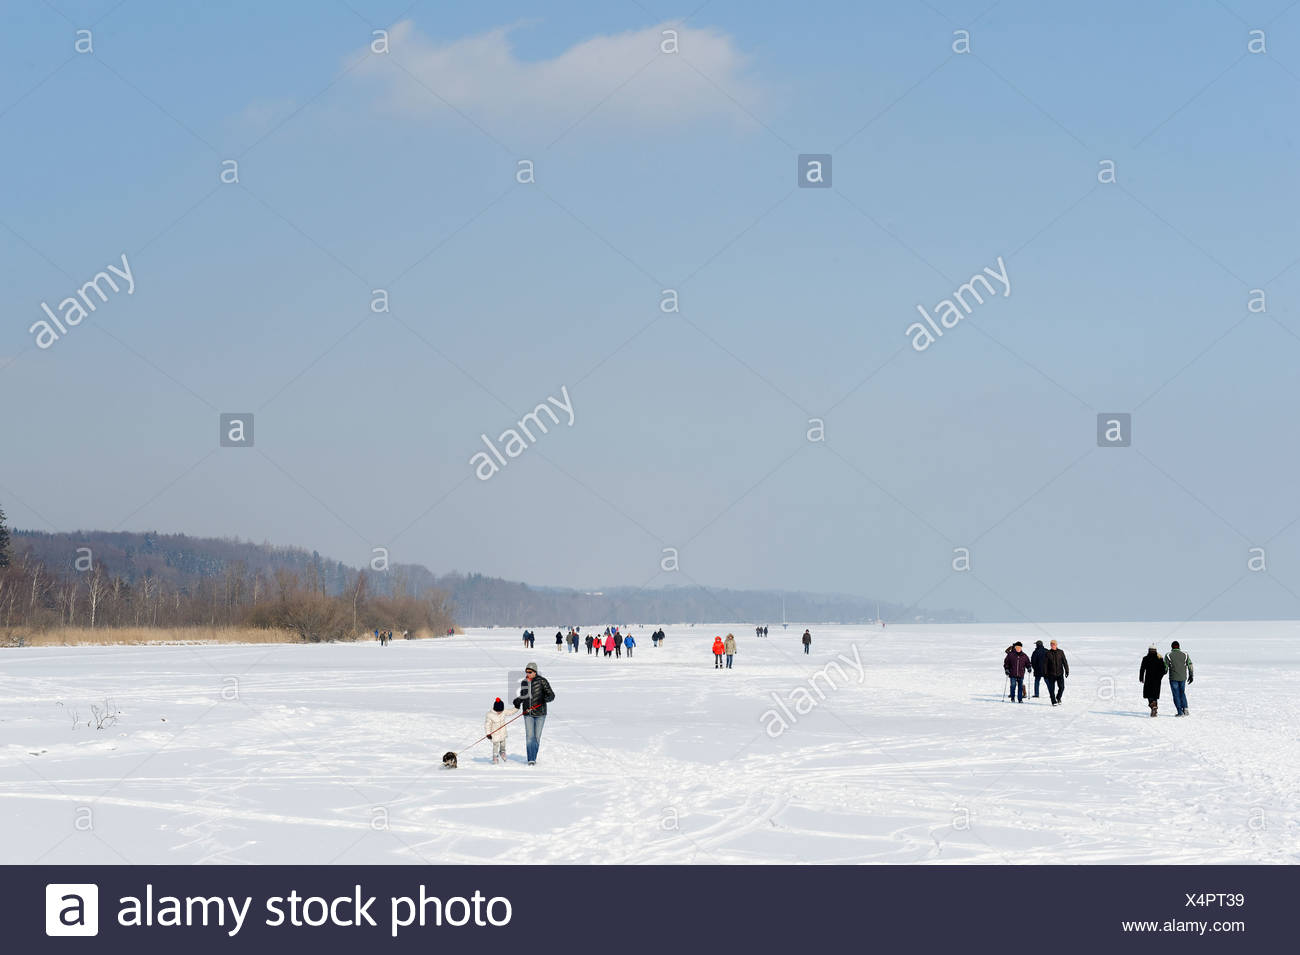 Ice skaters and hikers at the little house on the lake, kleines Seehaus, in Winter, near St. Heinrich, Lake Starnberg - Stock Image